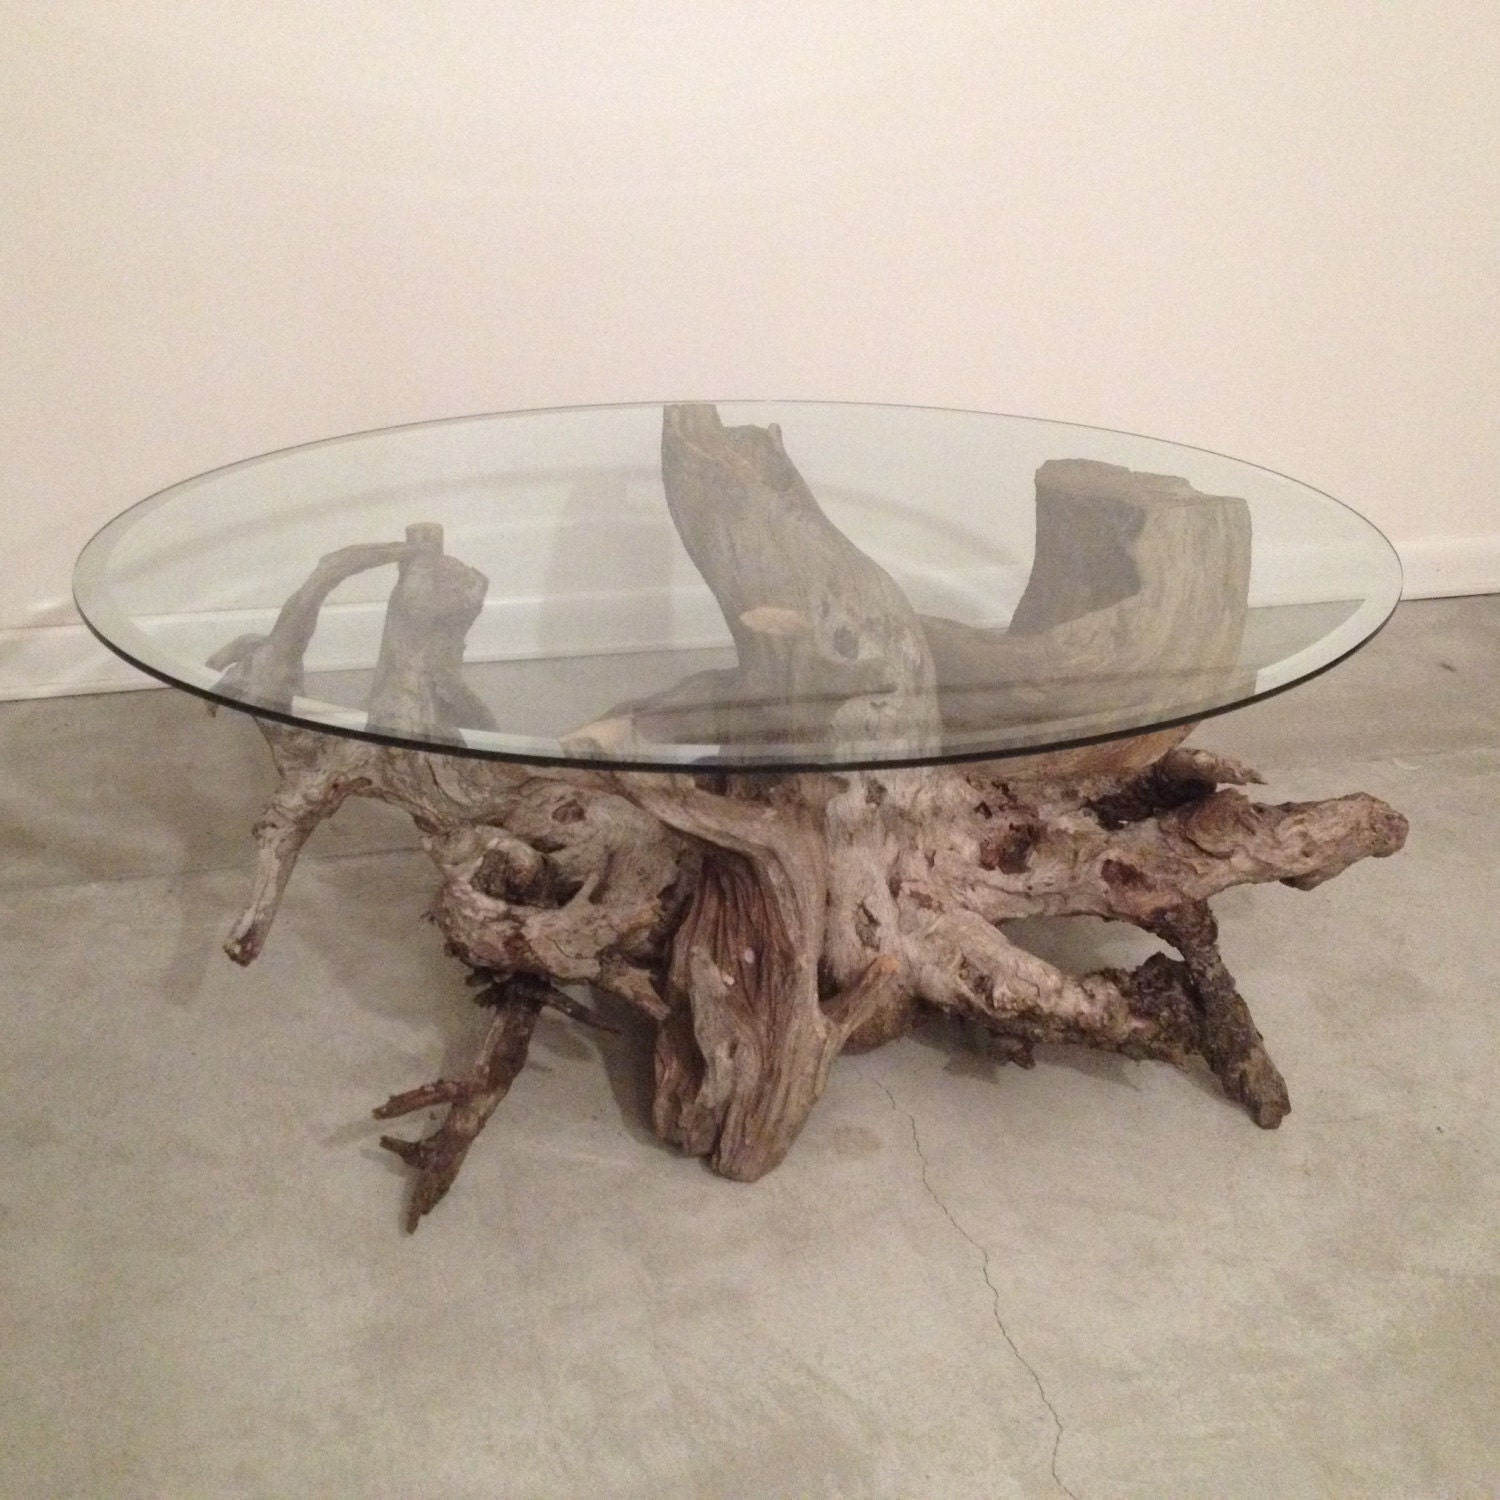 Etsy Round Coffee Tables: Driftwood Coffee Table. Style 4. Handmade From Reclaimed